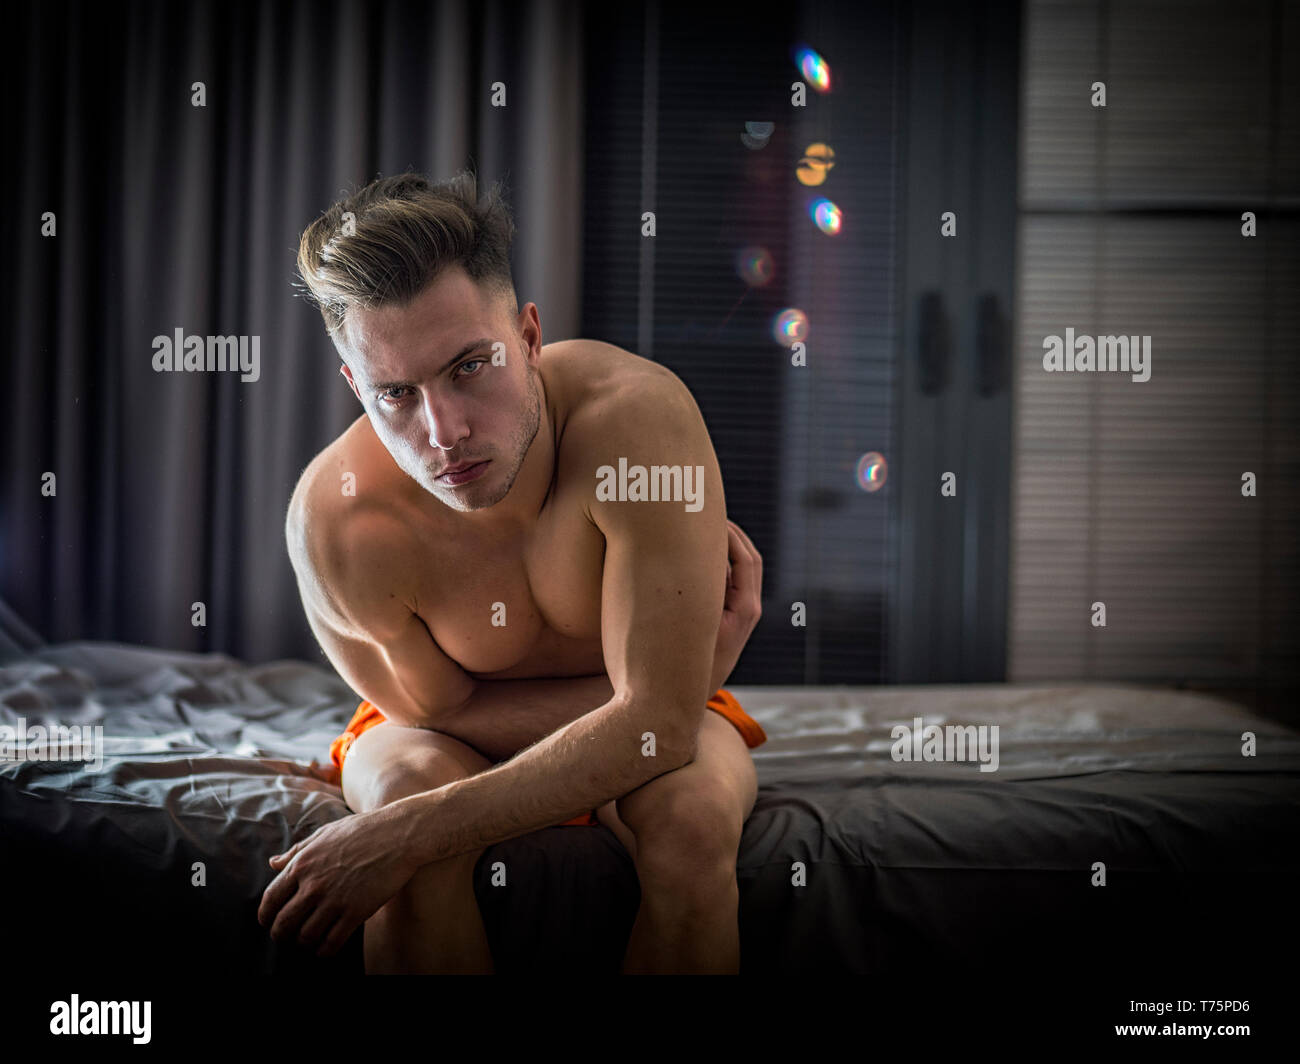 Shirtless naked sexy male model sitting alone on his bed in his bedroom, looking at camera with a seductive attitude Stock Photo